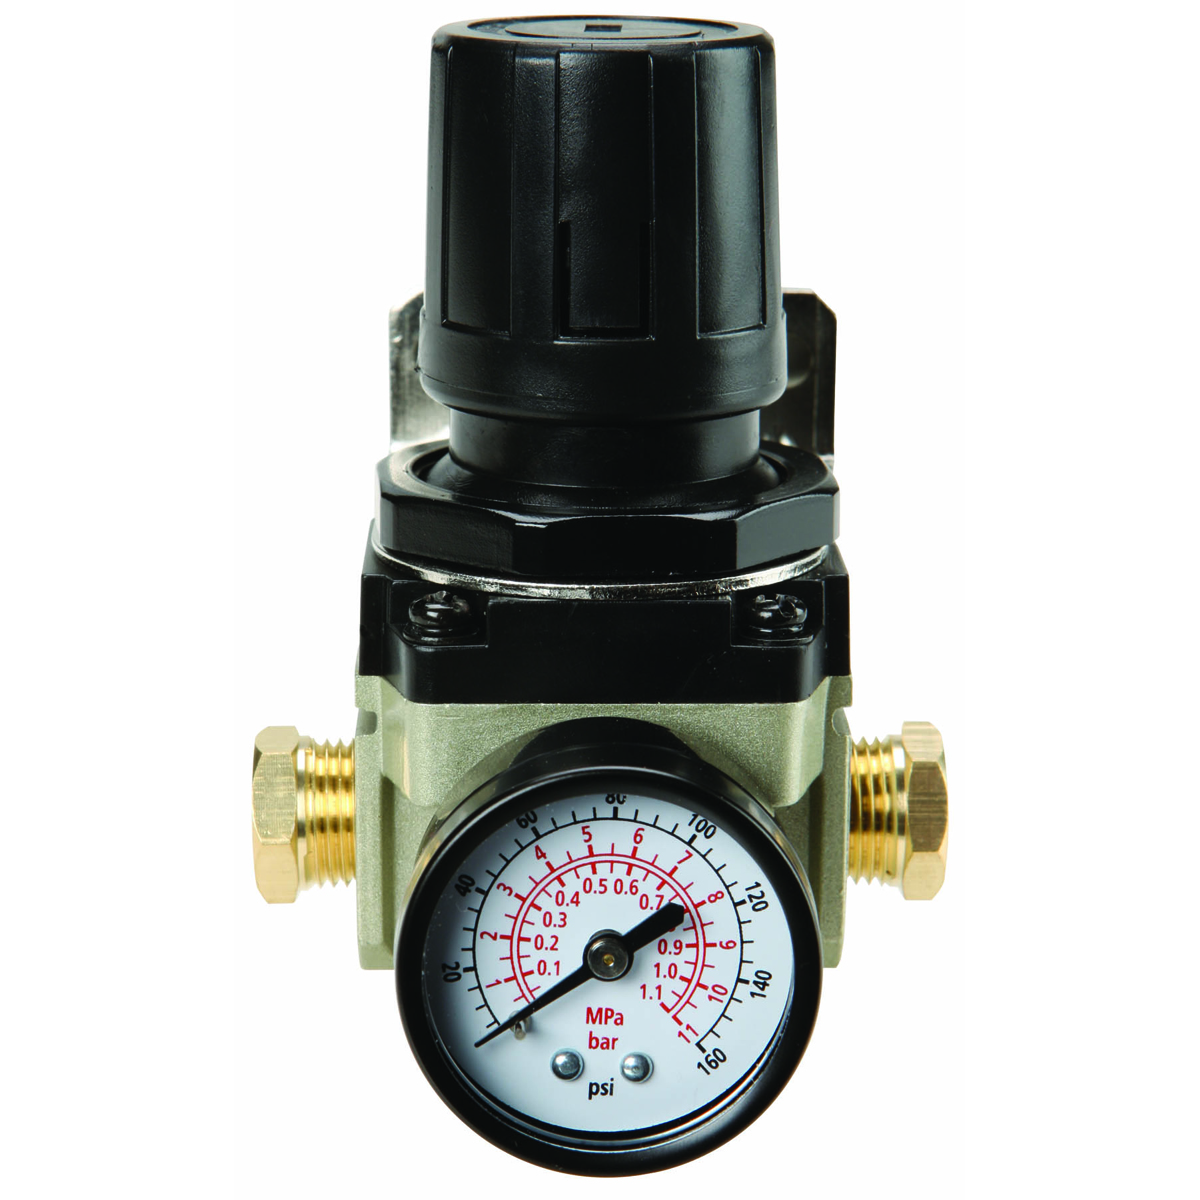 Horbor Freight Dial Indicator At : Psi in npt air flow regulator with dial gauge